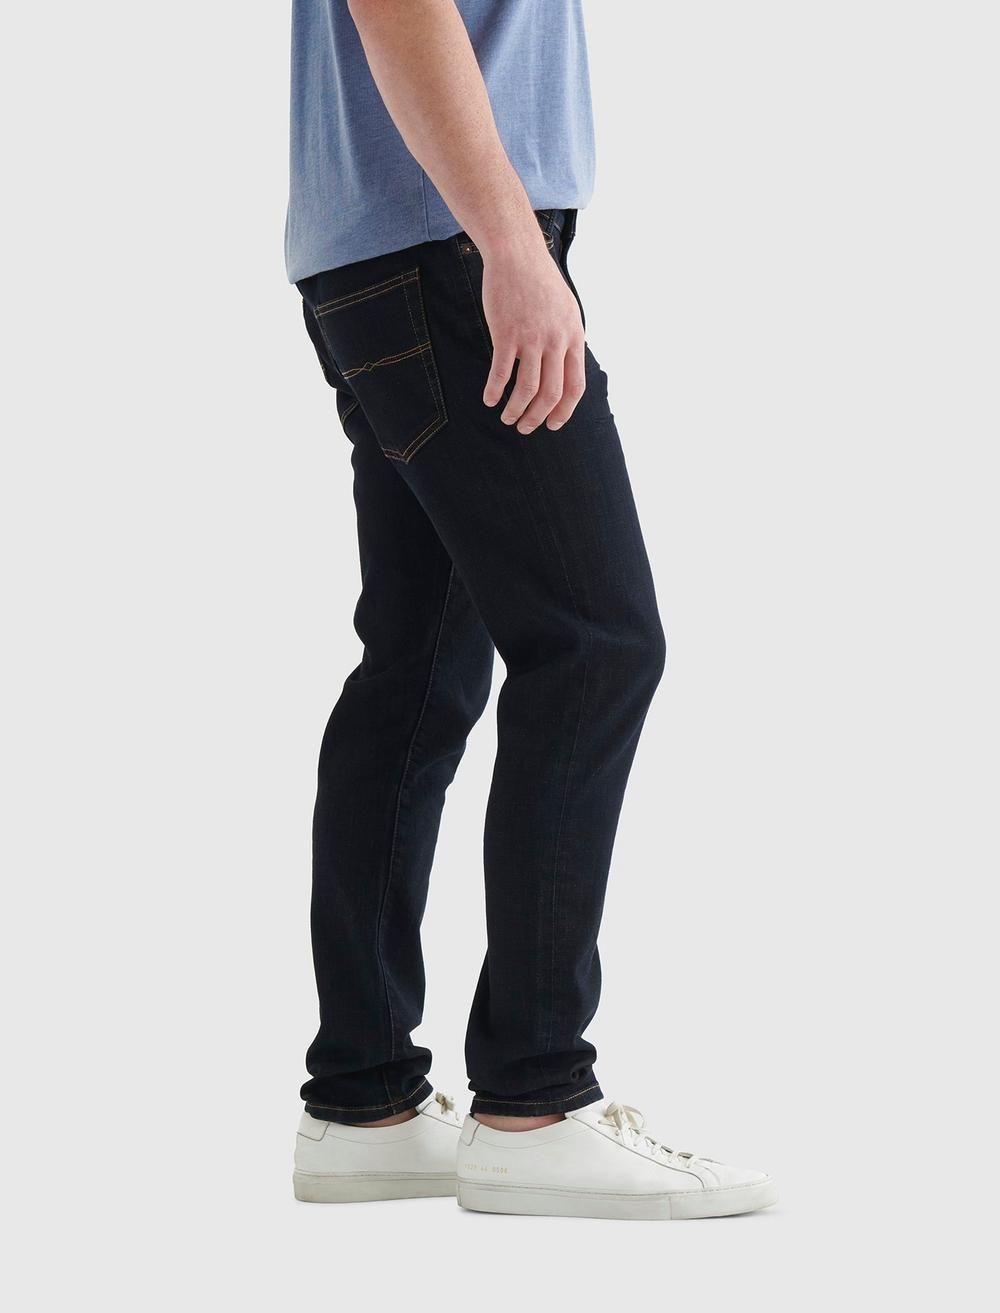 411 ATHLETIC TAPER COOLMAX STRETCH JEAN, image 3